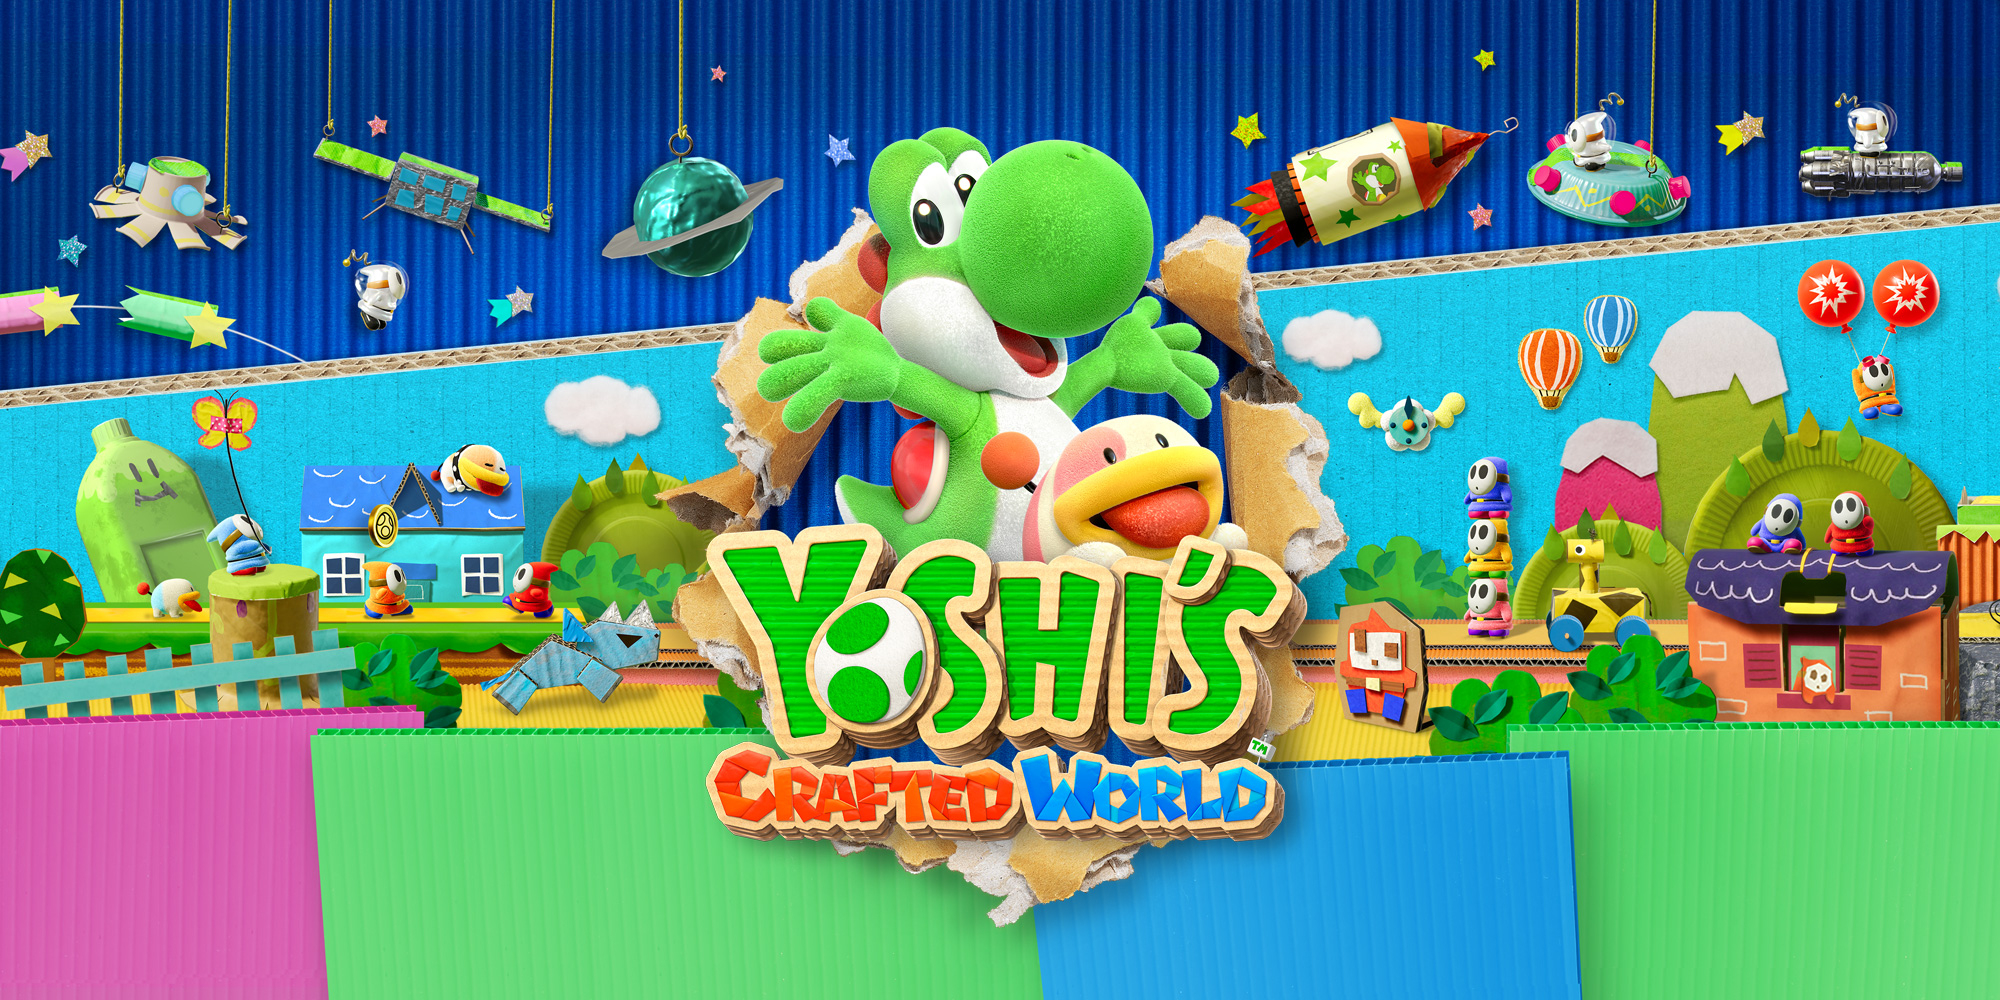 Yoshi's Crafted World | Nintendo Switch | Jeux | Nintendo serapportantà Jeux De Squelette Gratuit